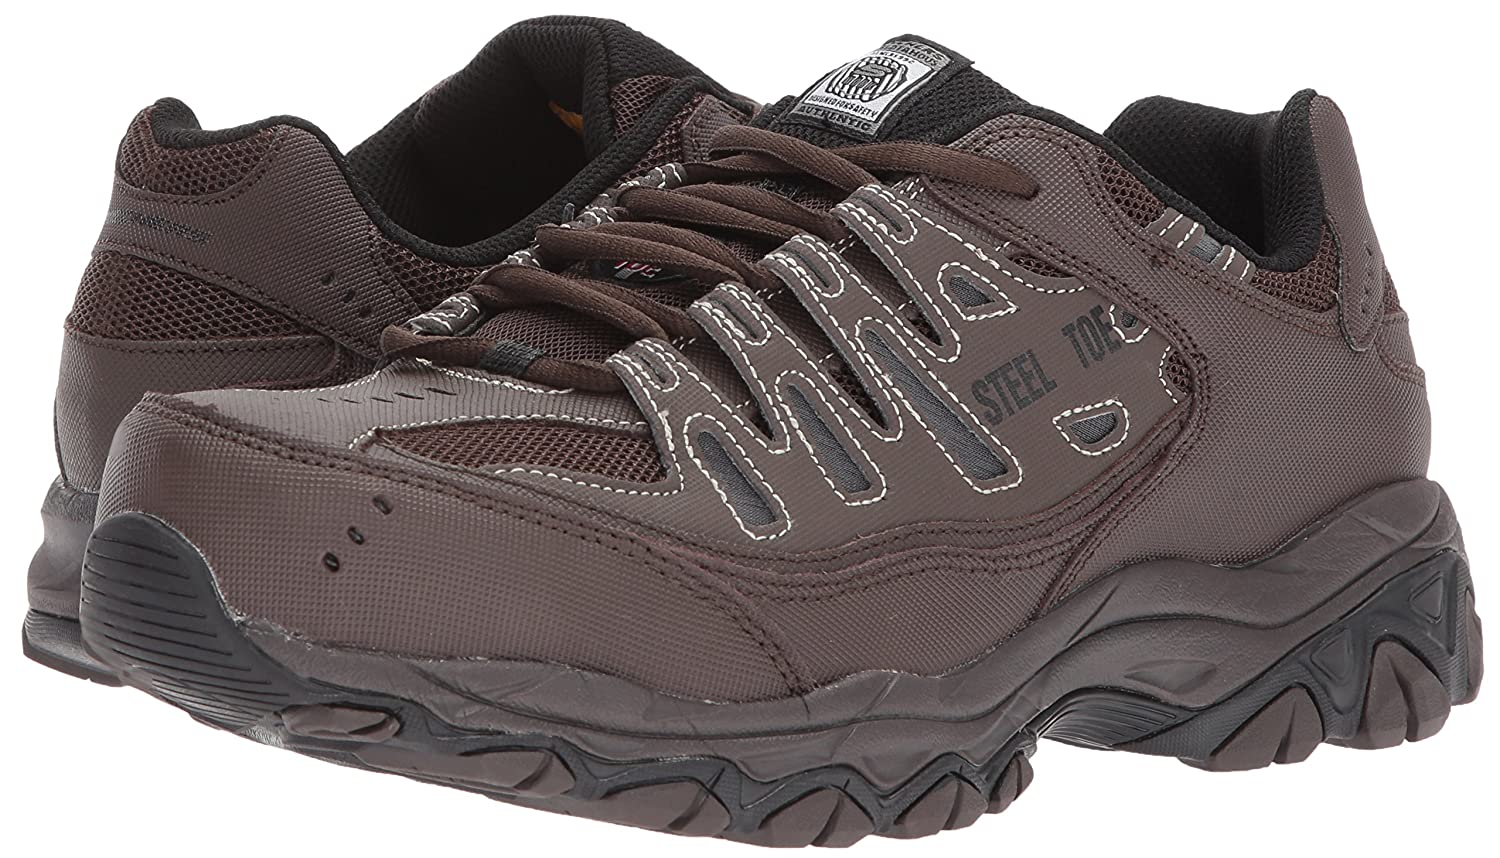 657336a33aa Skechers for Work Mens Cankton Industrial Shoe,Brown,13 Medium US ...